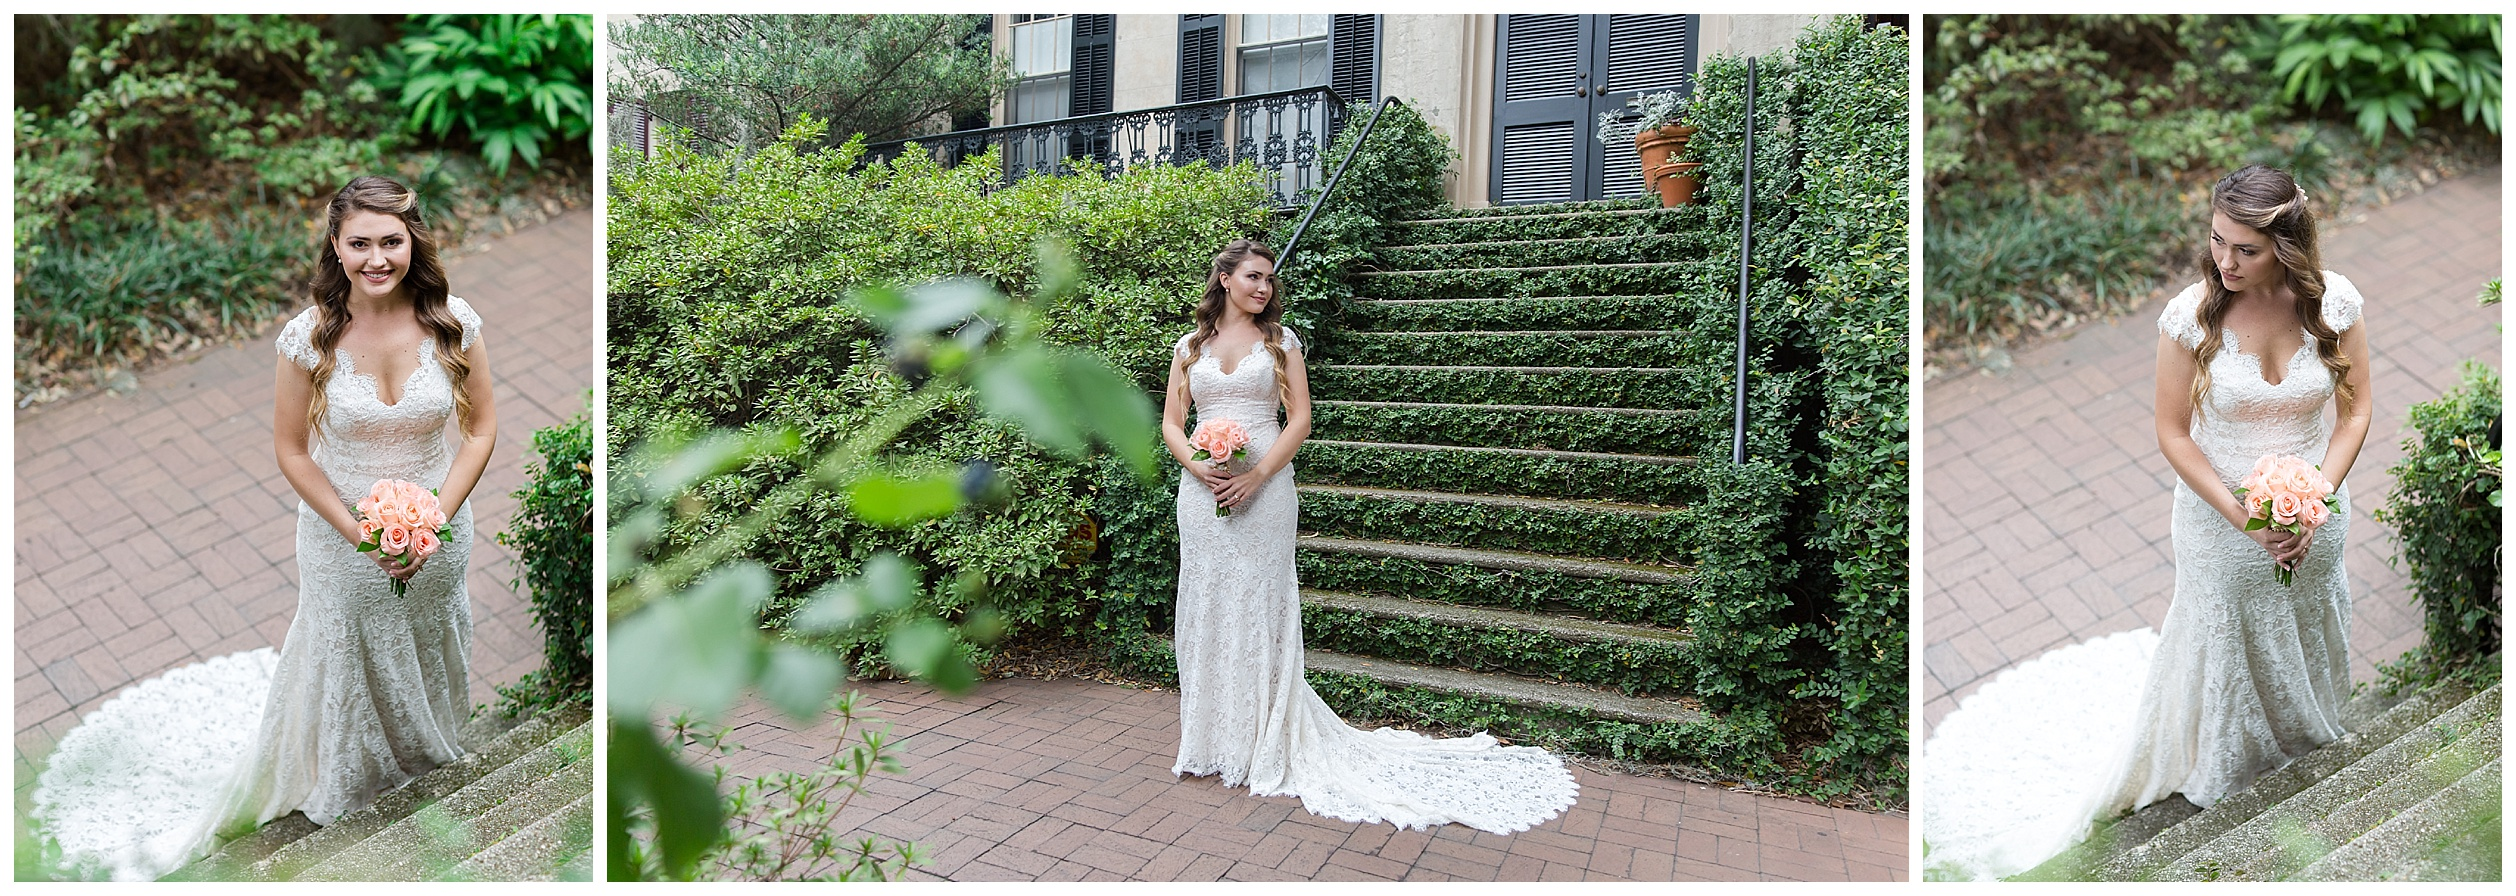 savannah wedding photographer forsyth park elopement-23.jpg